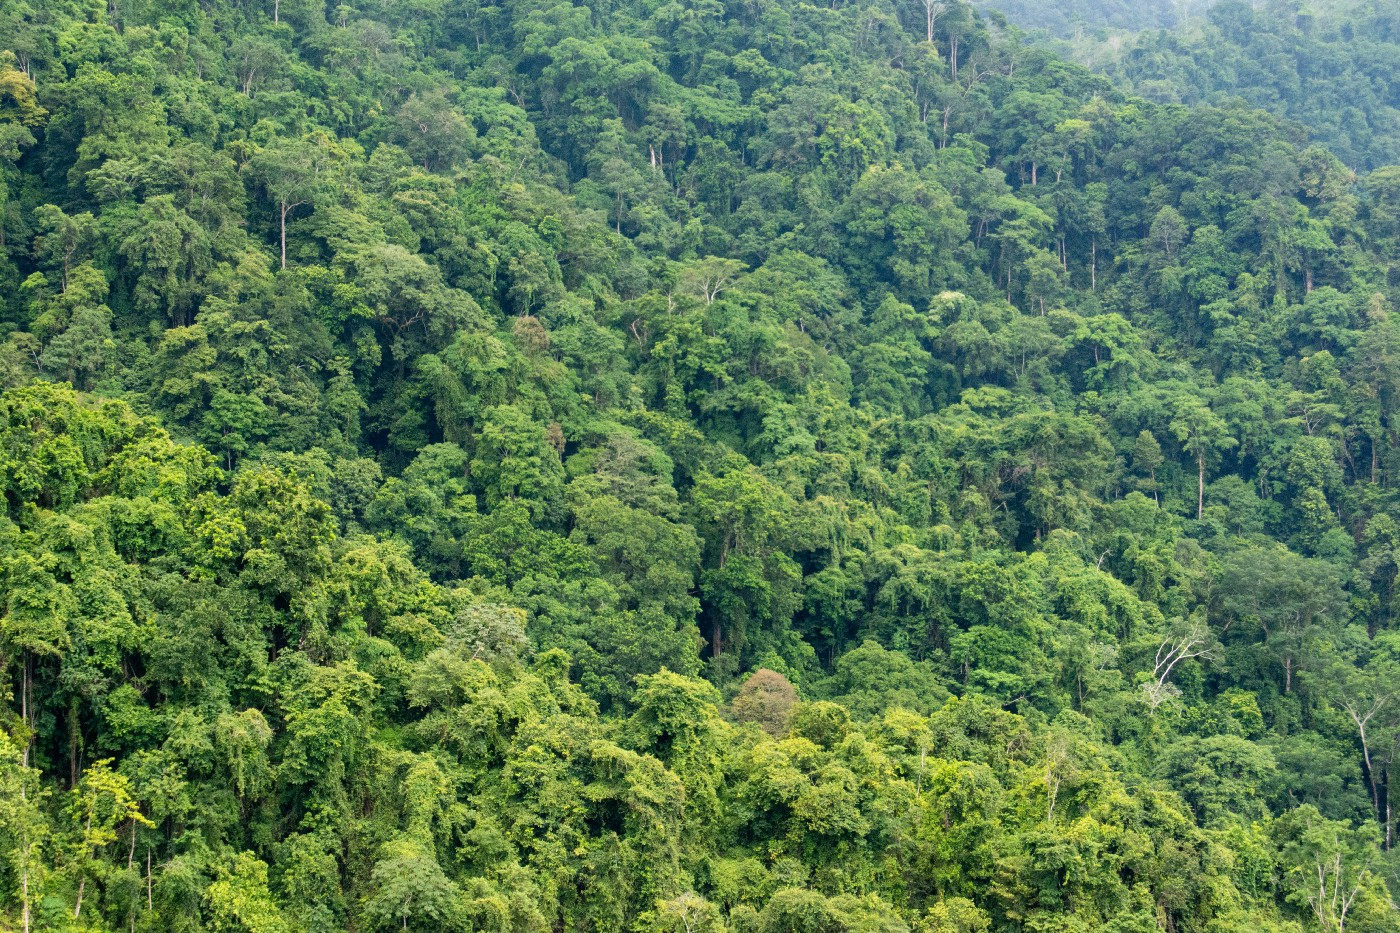 Panorama shot of a rainforest, filled with green trees.